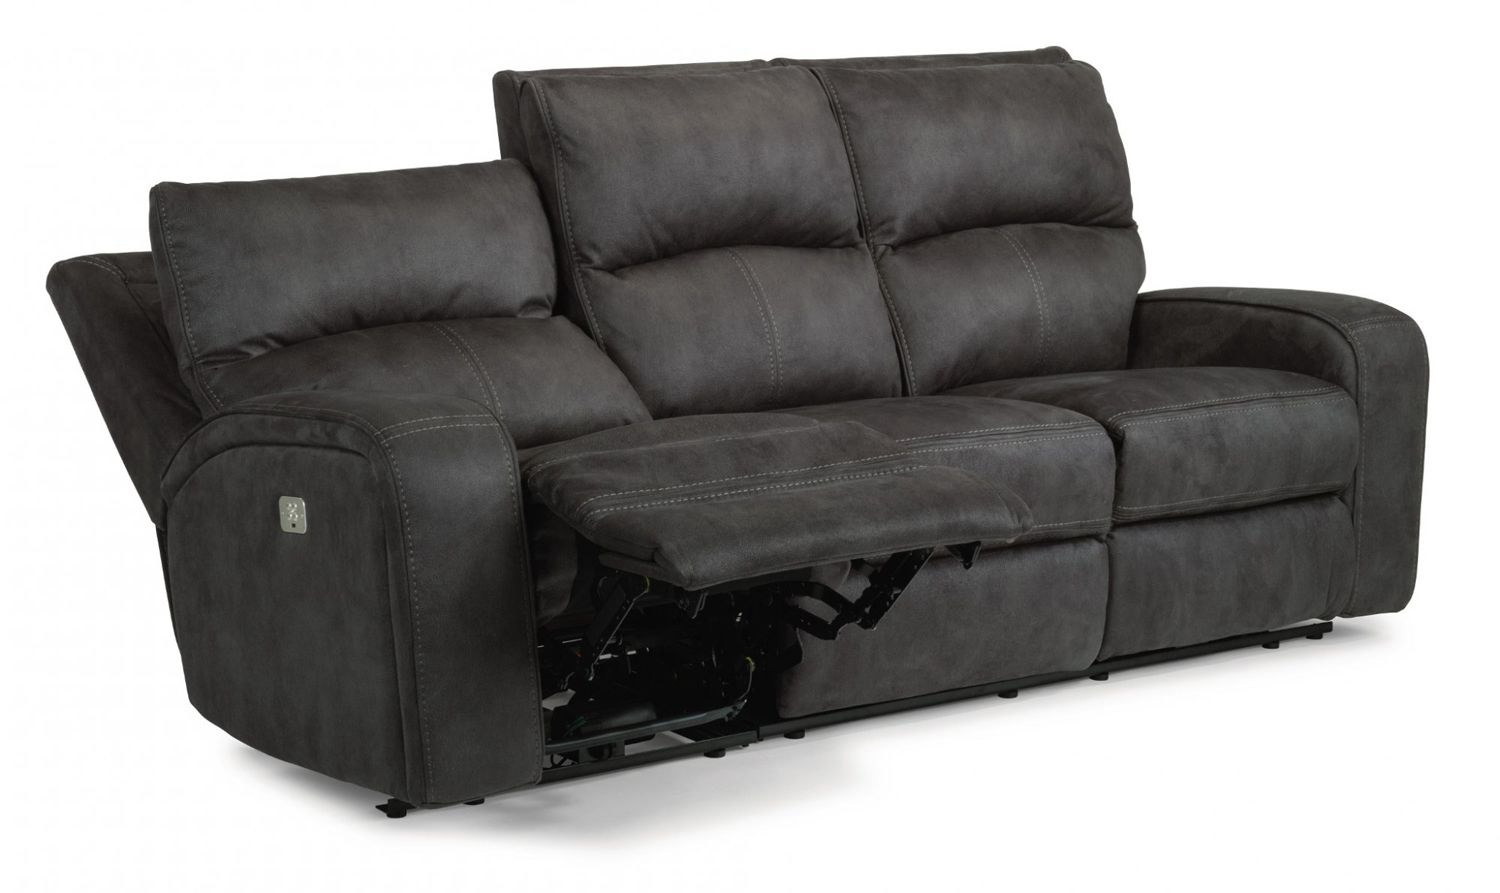 Flexsteel Rhapsody Reclining Sofa 1150 62PH 136 04